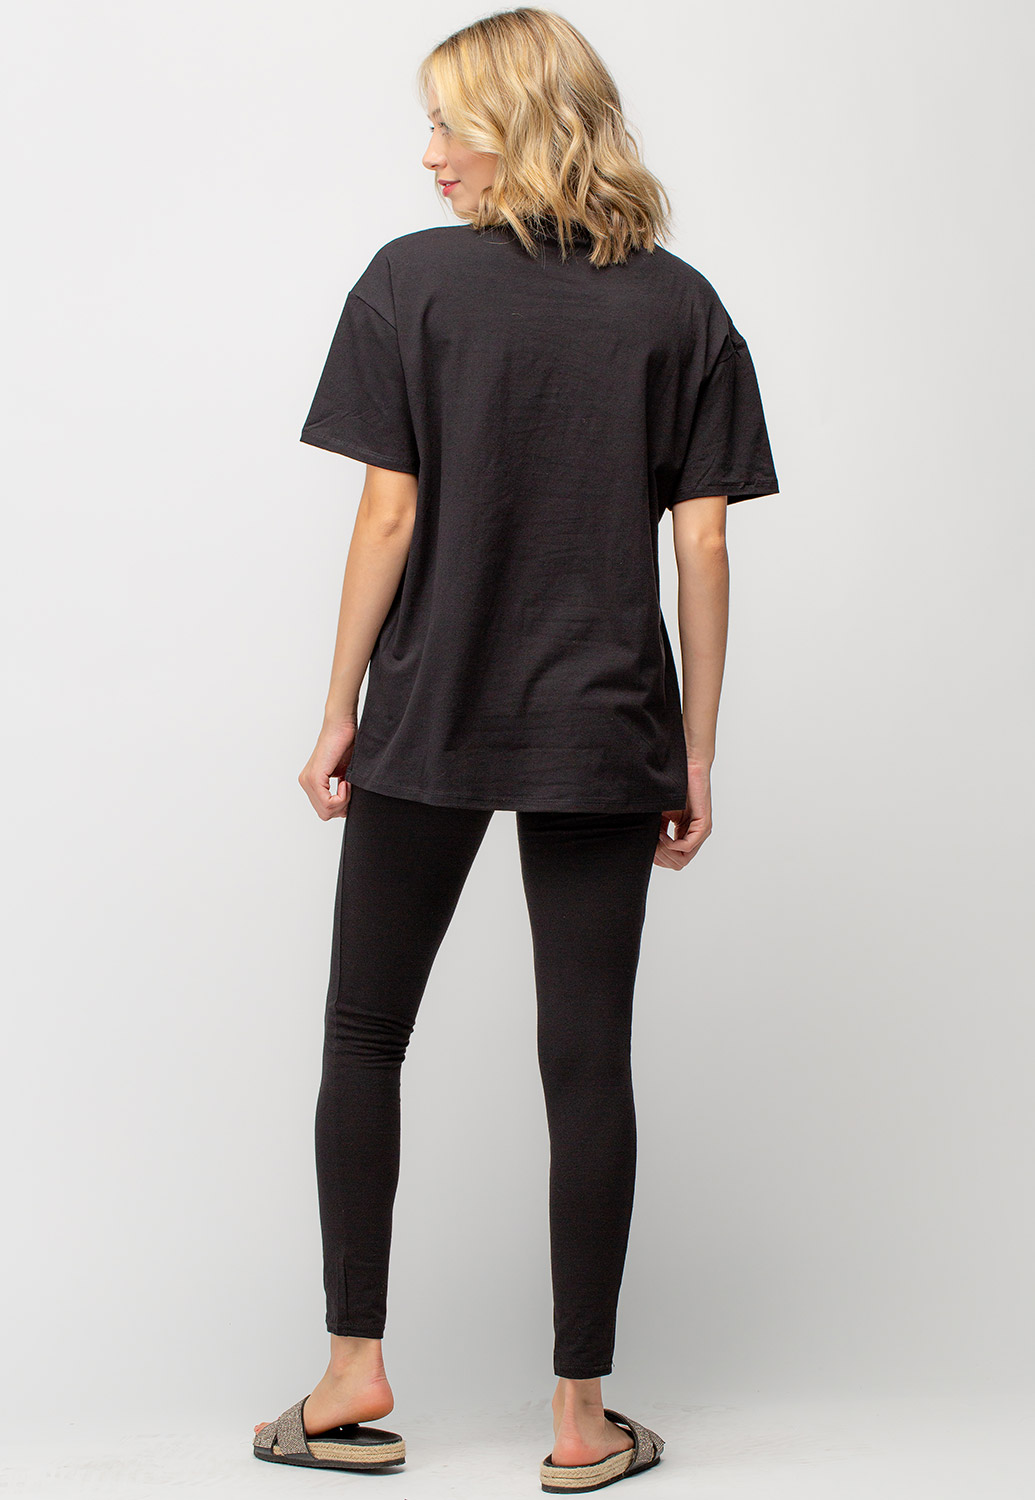 Oversized T-Shirt And Leggings Activewear Set